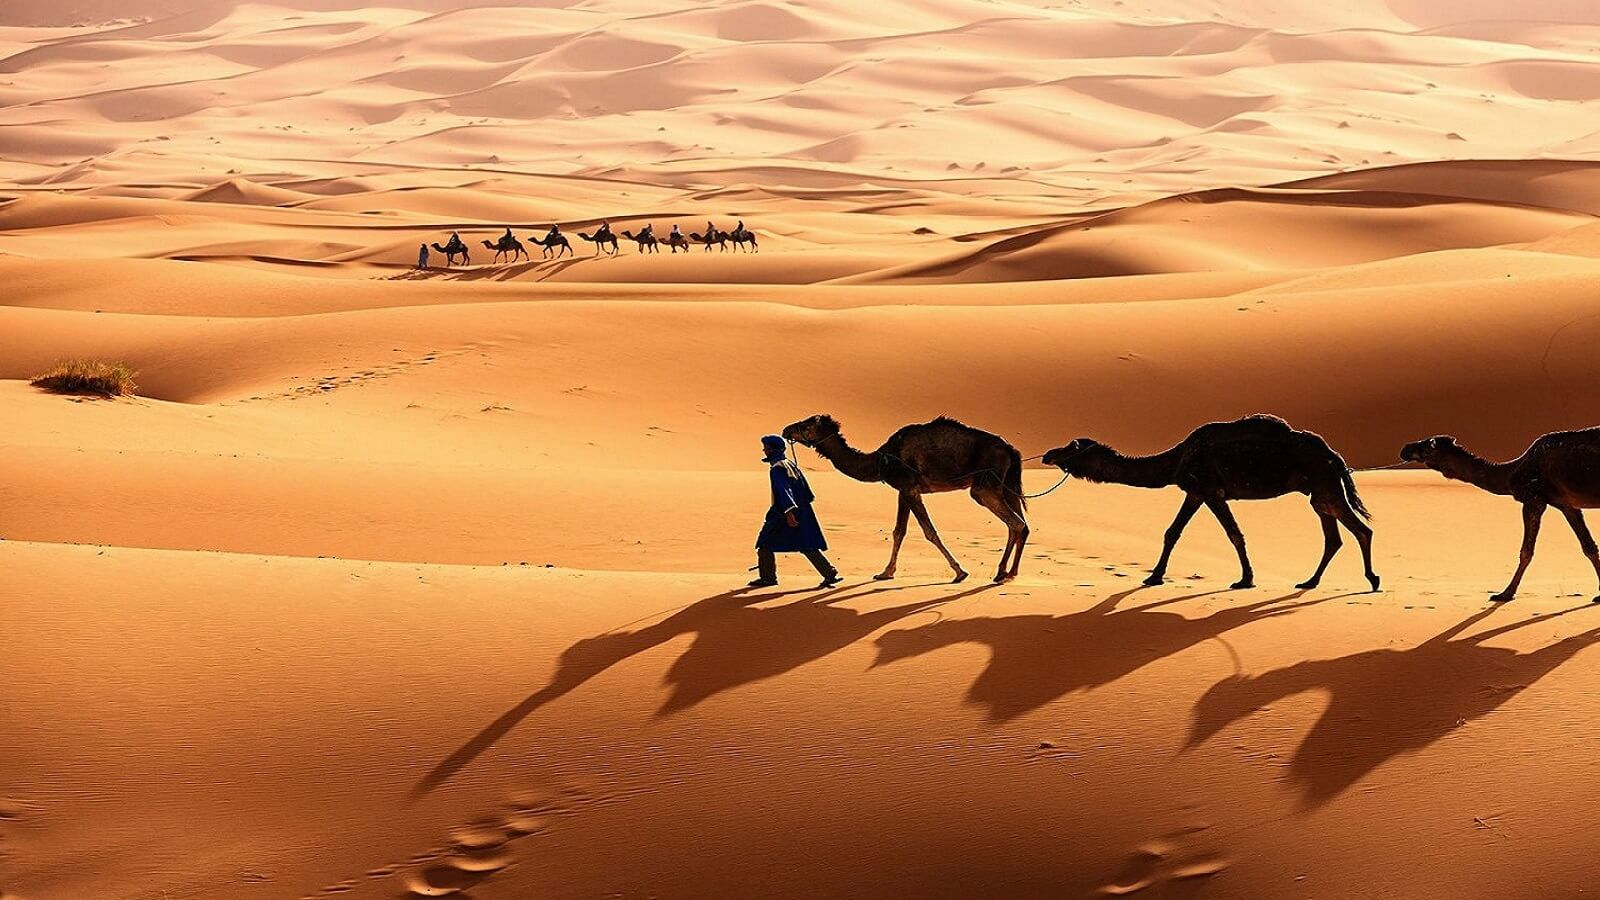 a man leading camels in the desert